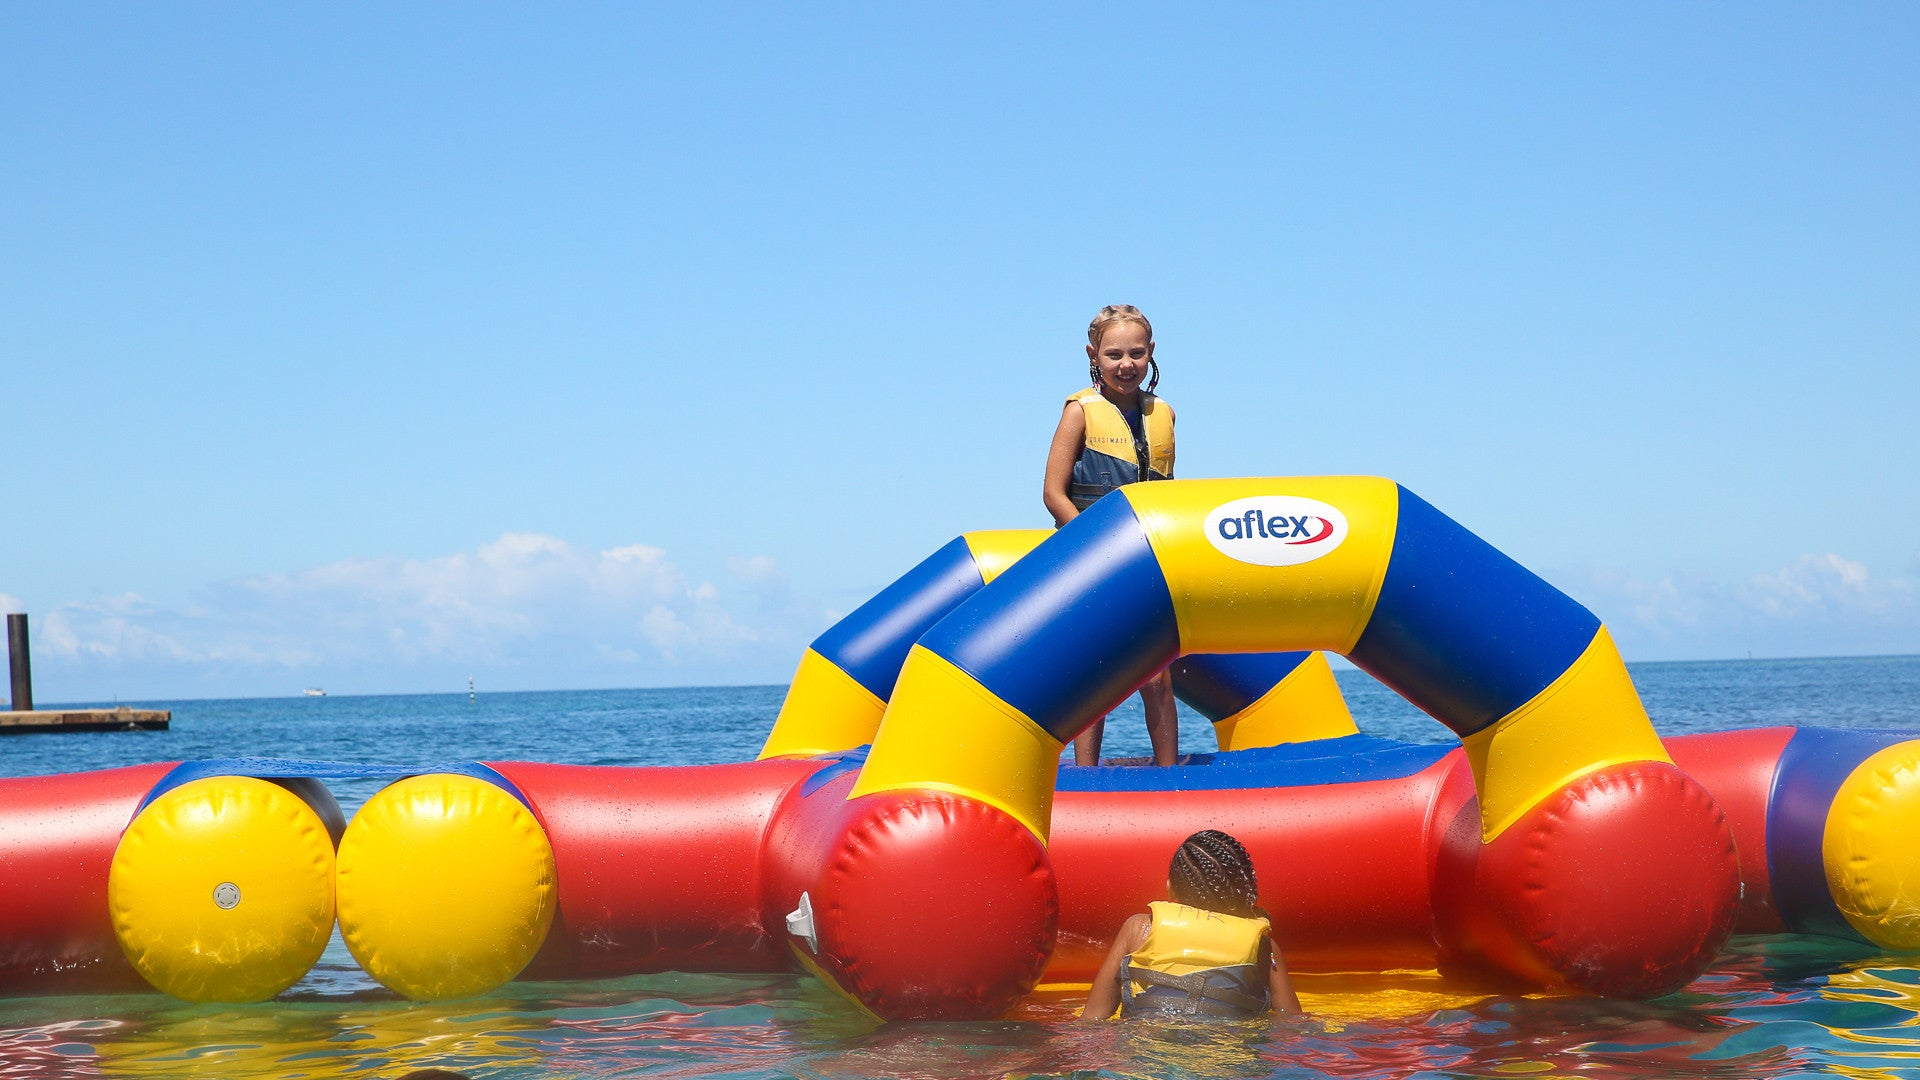 Aqua Adventure 'Chillout Zone' Inflatable Waterpark - Open Water Aqua Adventure - Aflex Technology